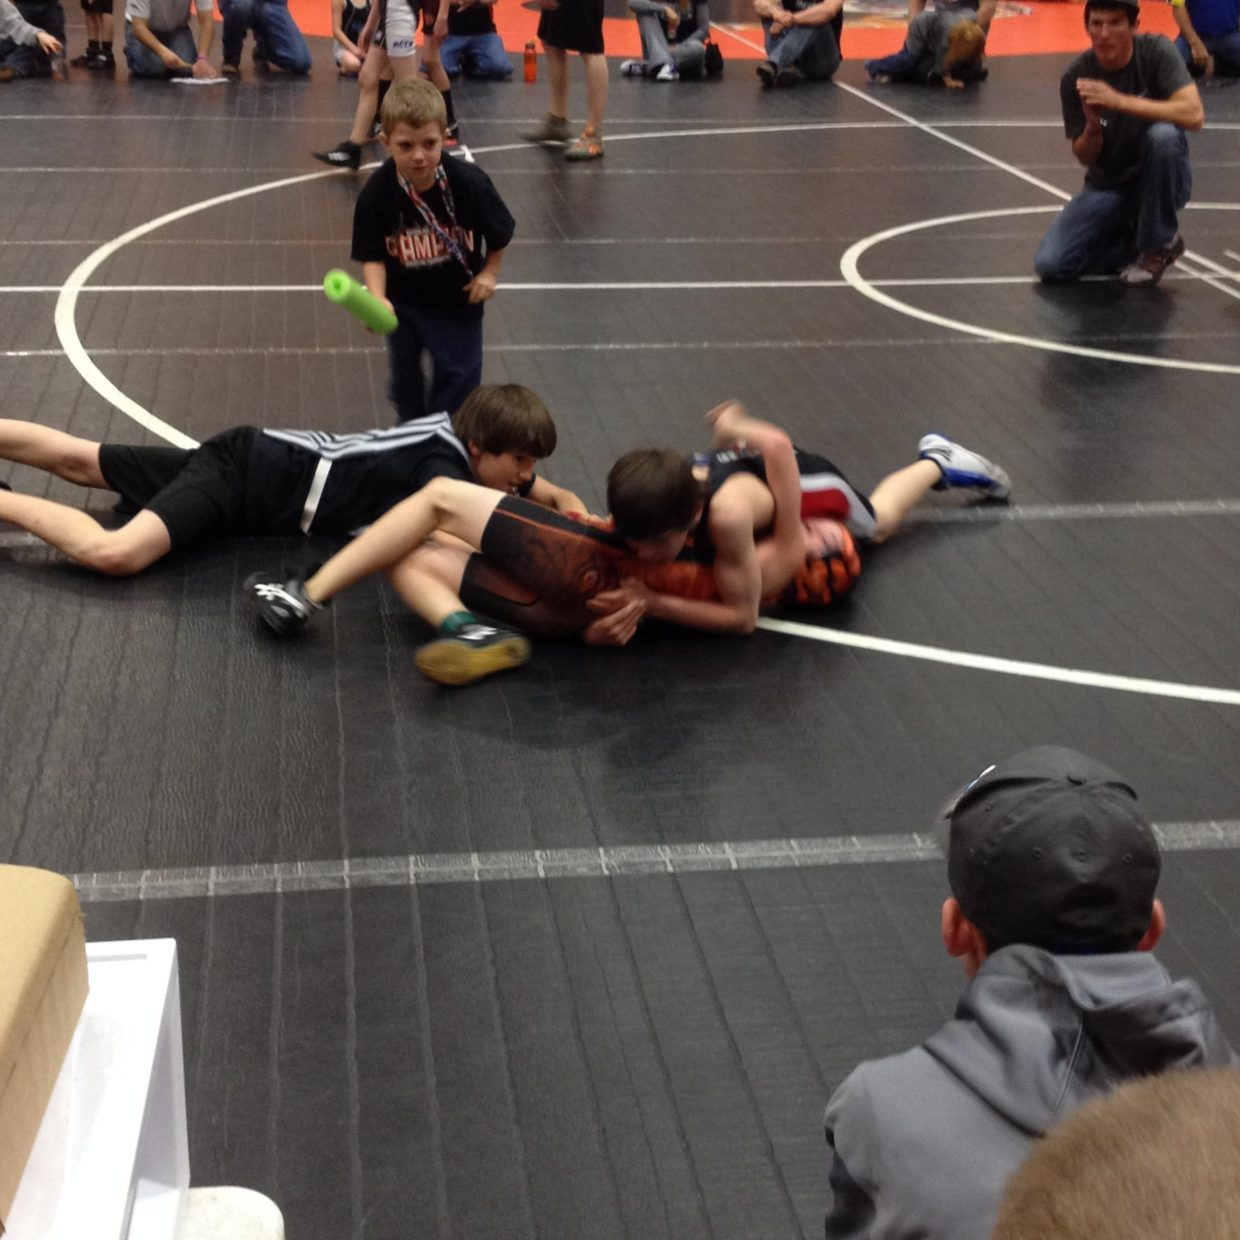 Pee Wee Wrestling Tournament on Saturday in Hayden. Submitted by David Torgler.